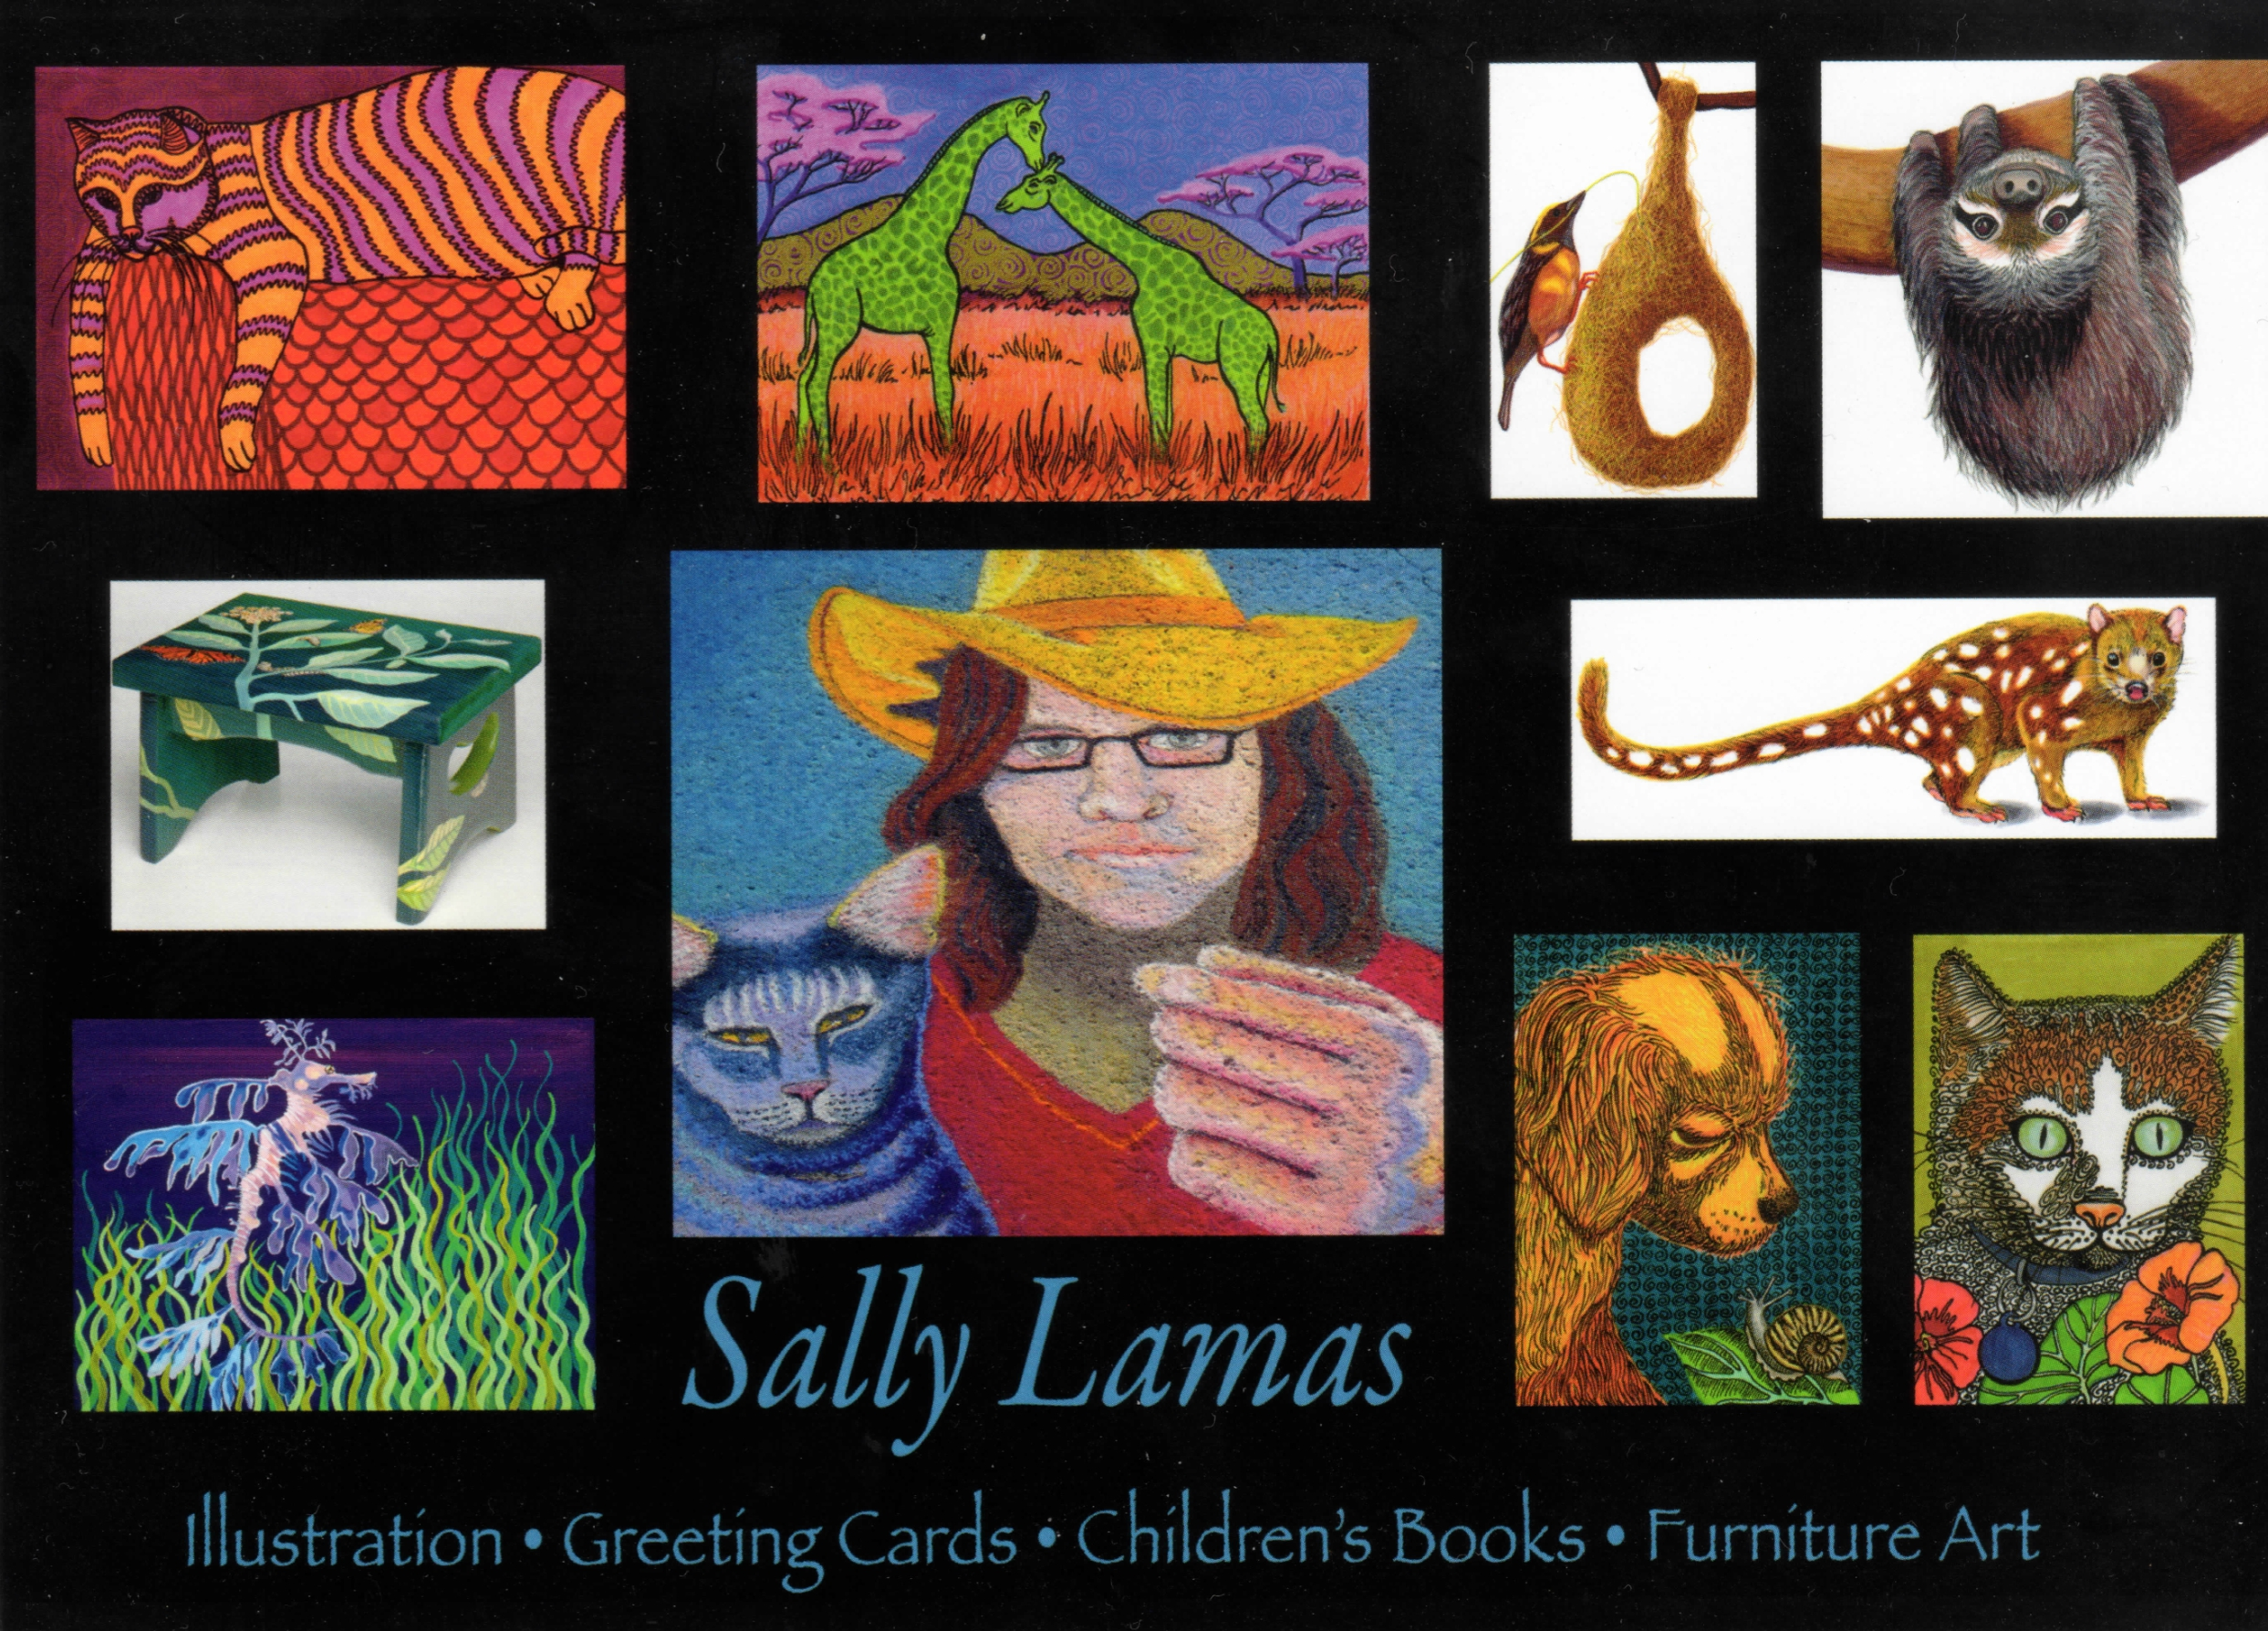 Samples of Sally's work.